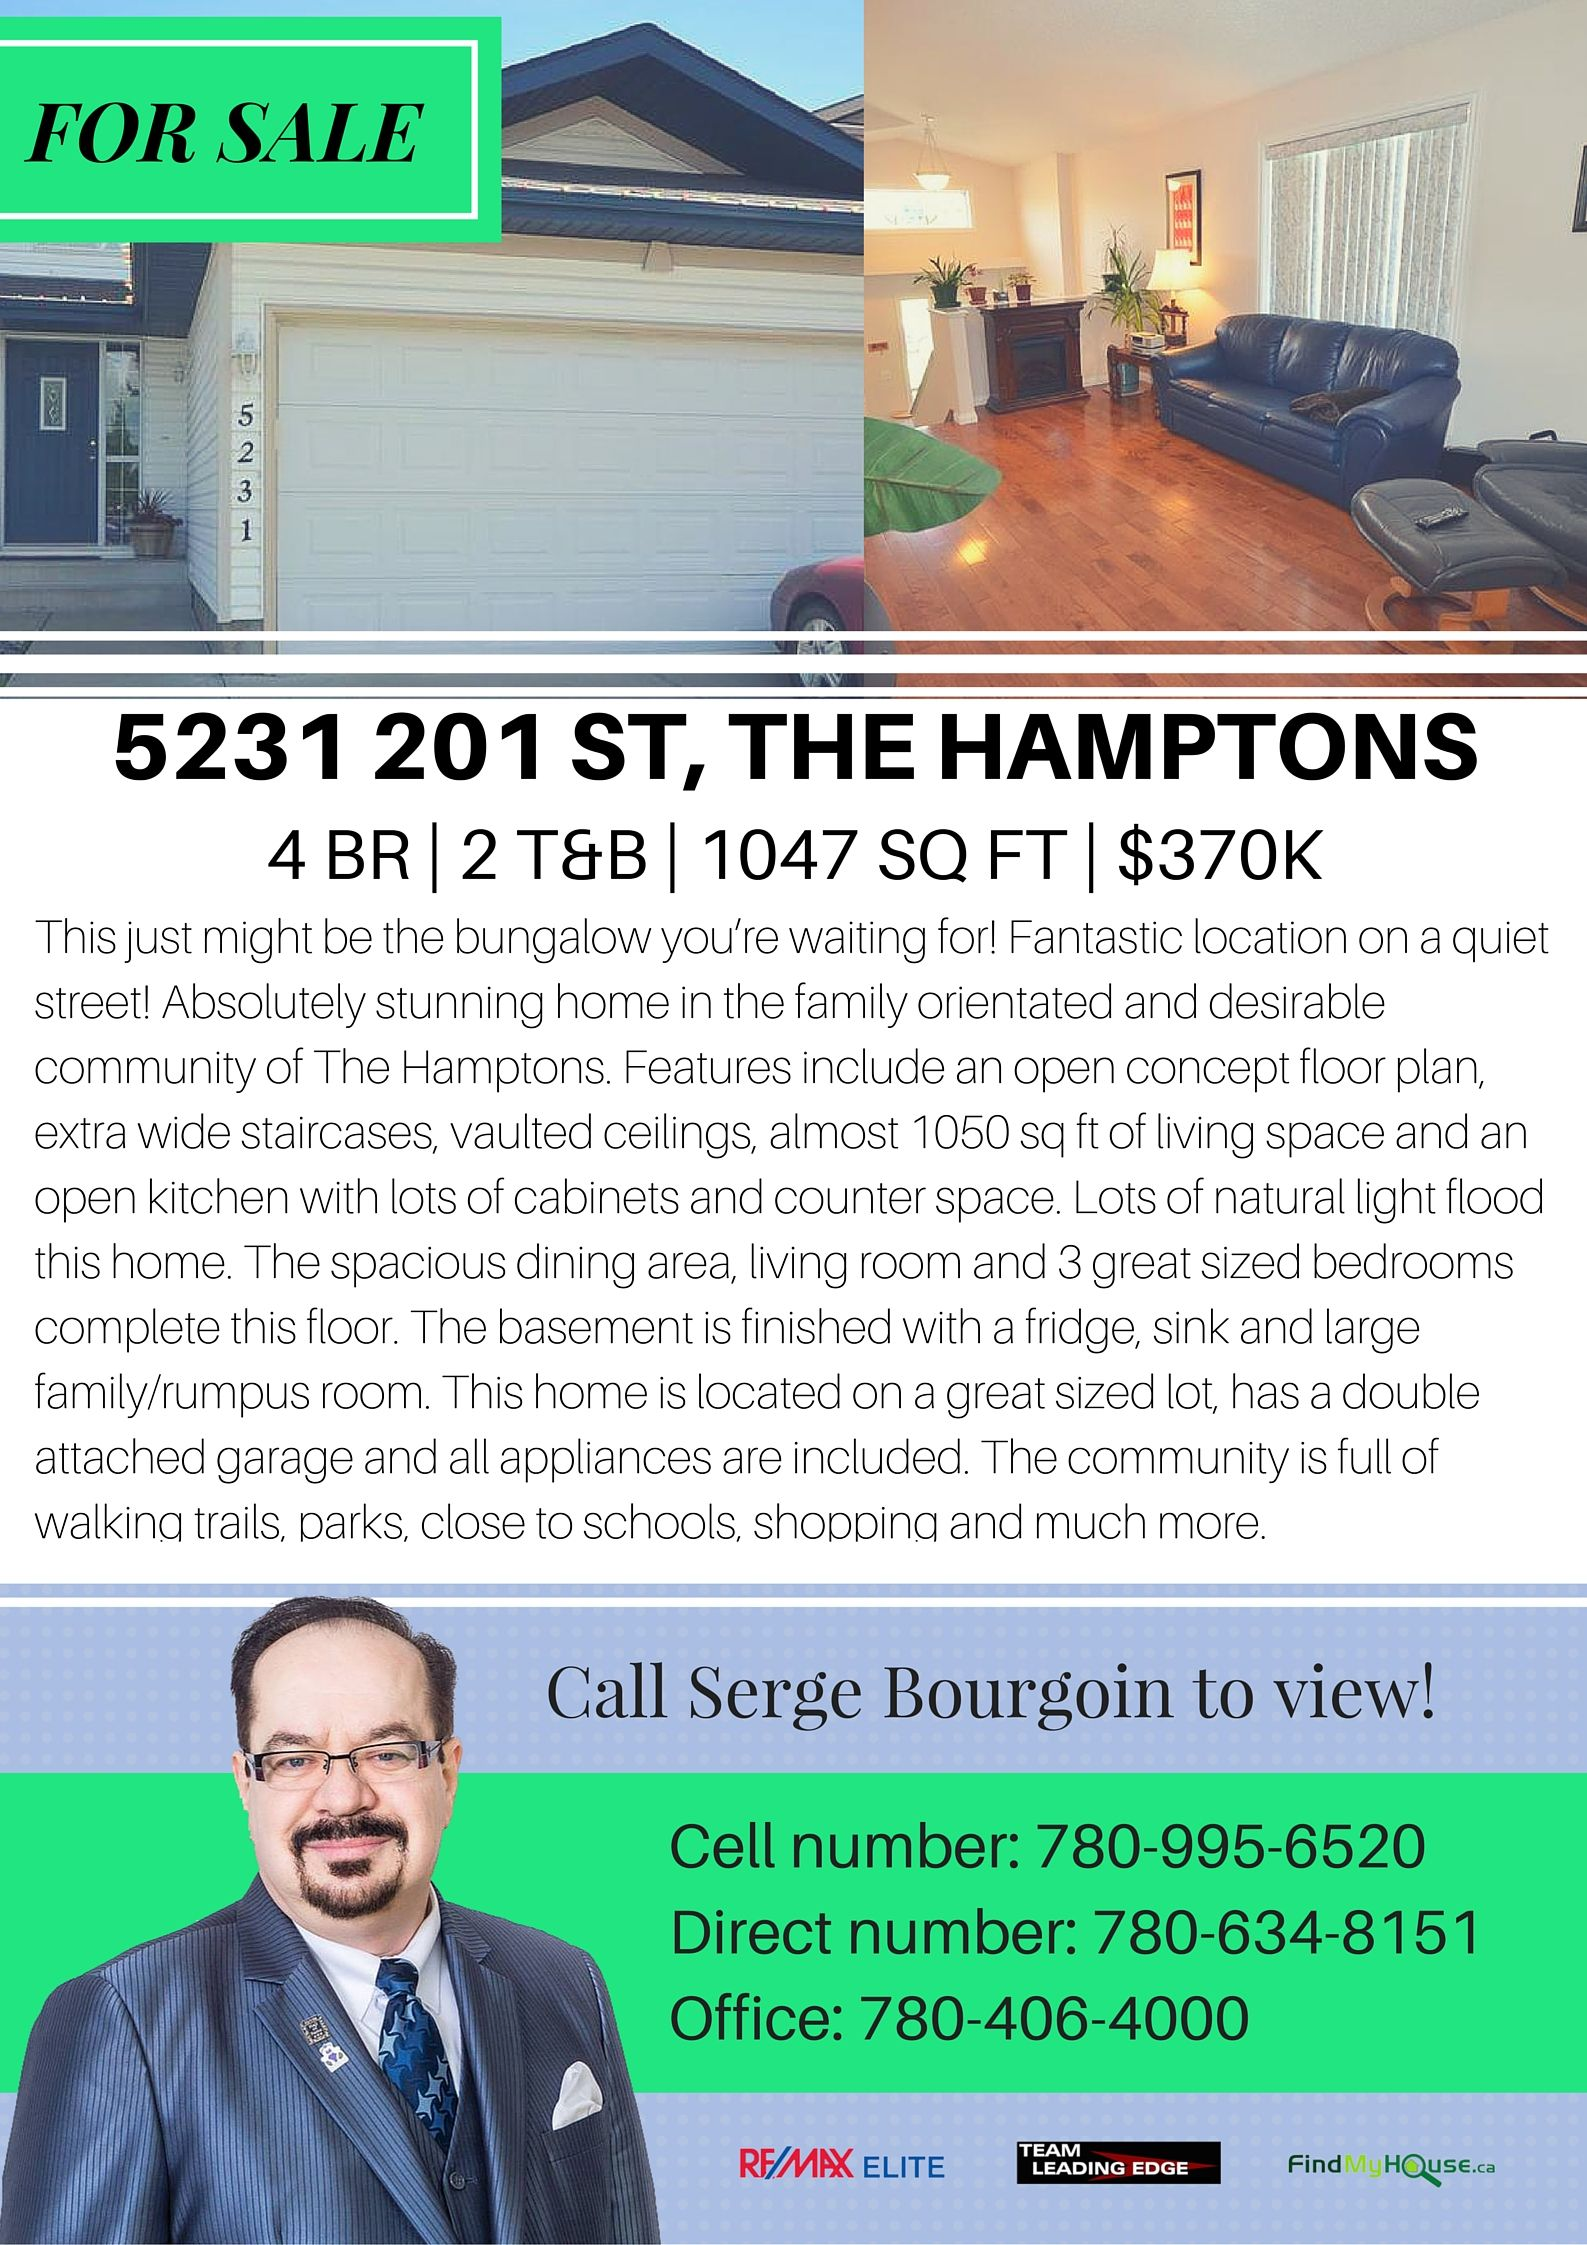 5231 201 Street the hamptons edmonton home for sale mls listings